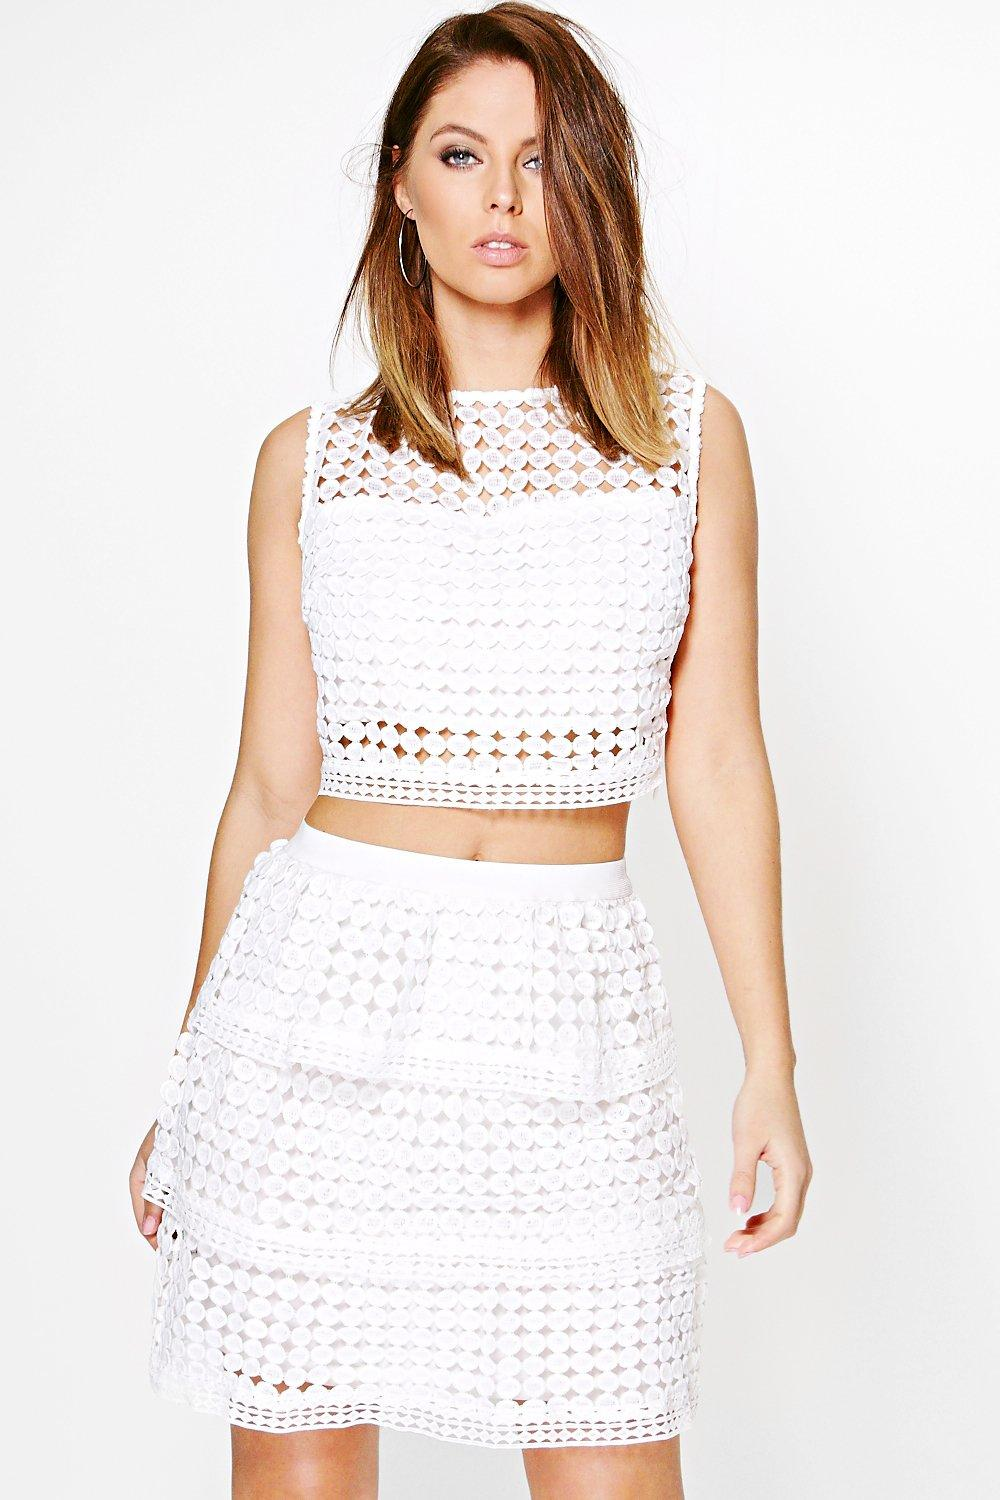 Abigail Lace Peplum Top And Skirt Co-ord